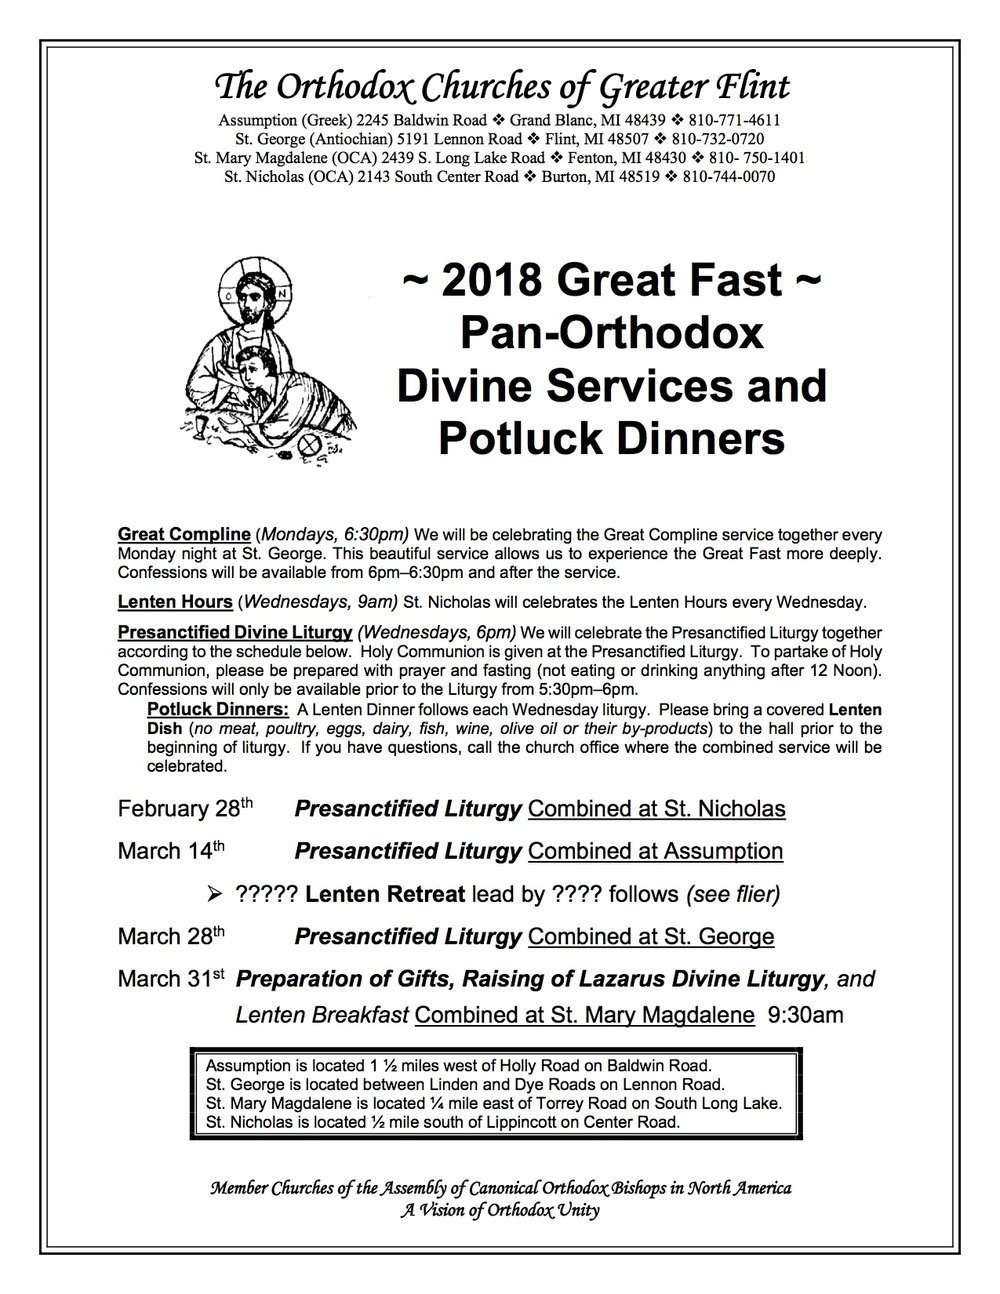 2018 Presanctified and Potluck JPEG.jpg